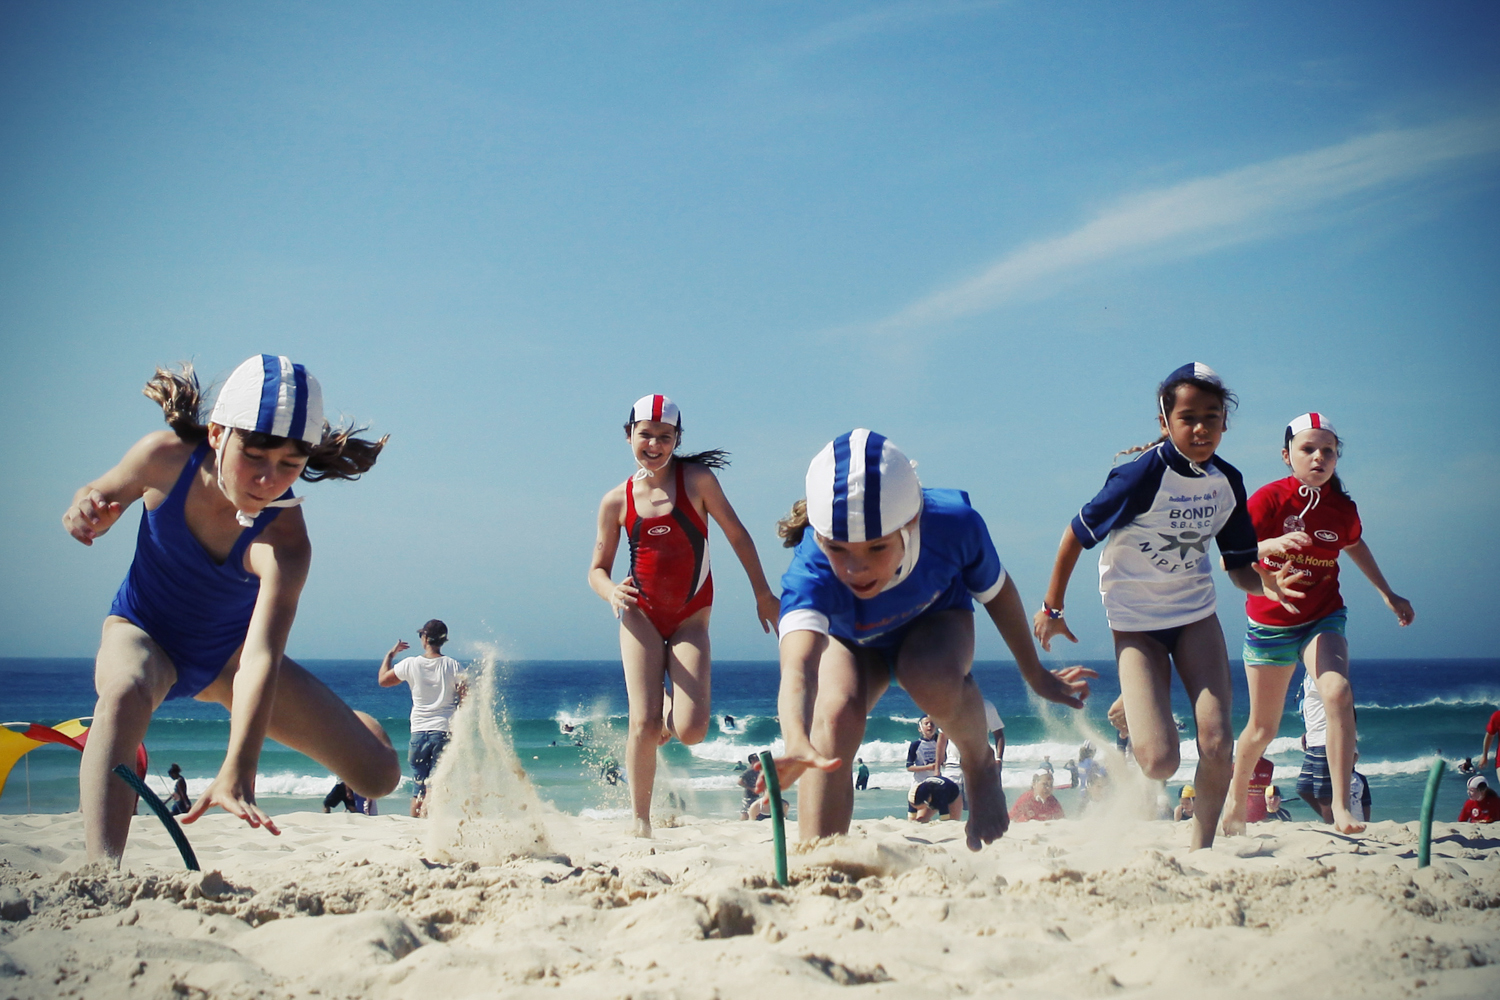 Nippers_Surf_Life_Saving_Bondi_Beach.11.jpeg